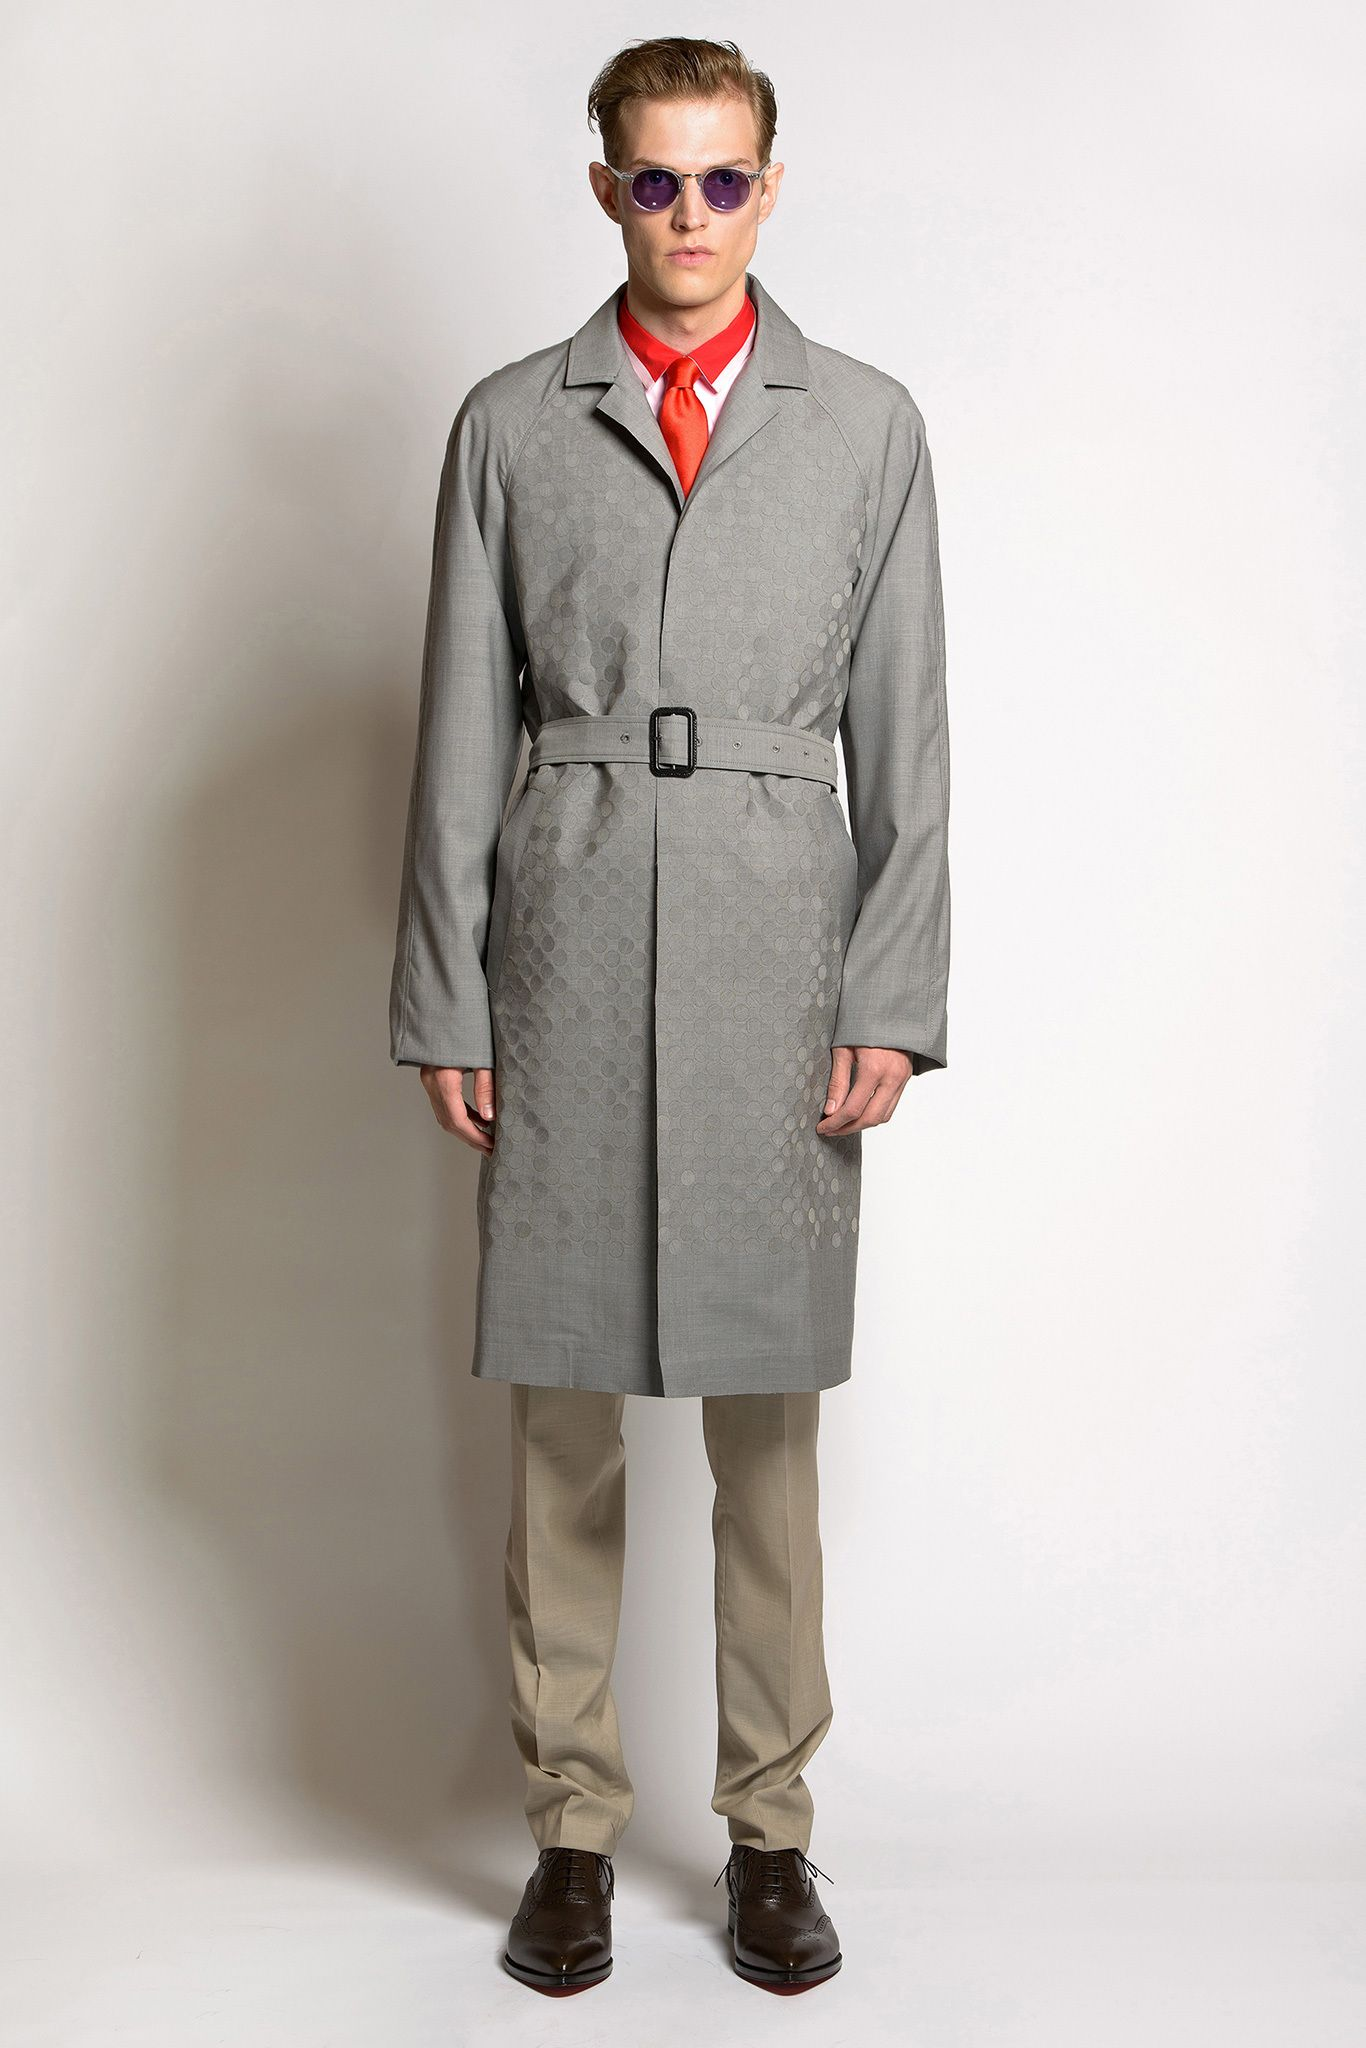 Jonathan Saunders Spring 2014 Menswear - Collection - Gallery - Style.com